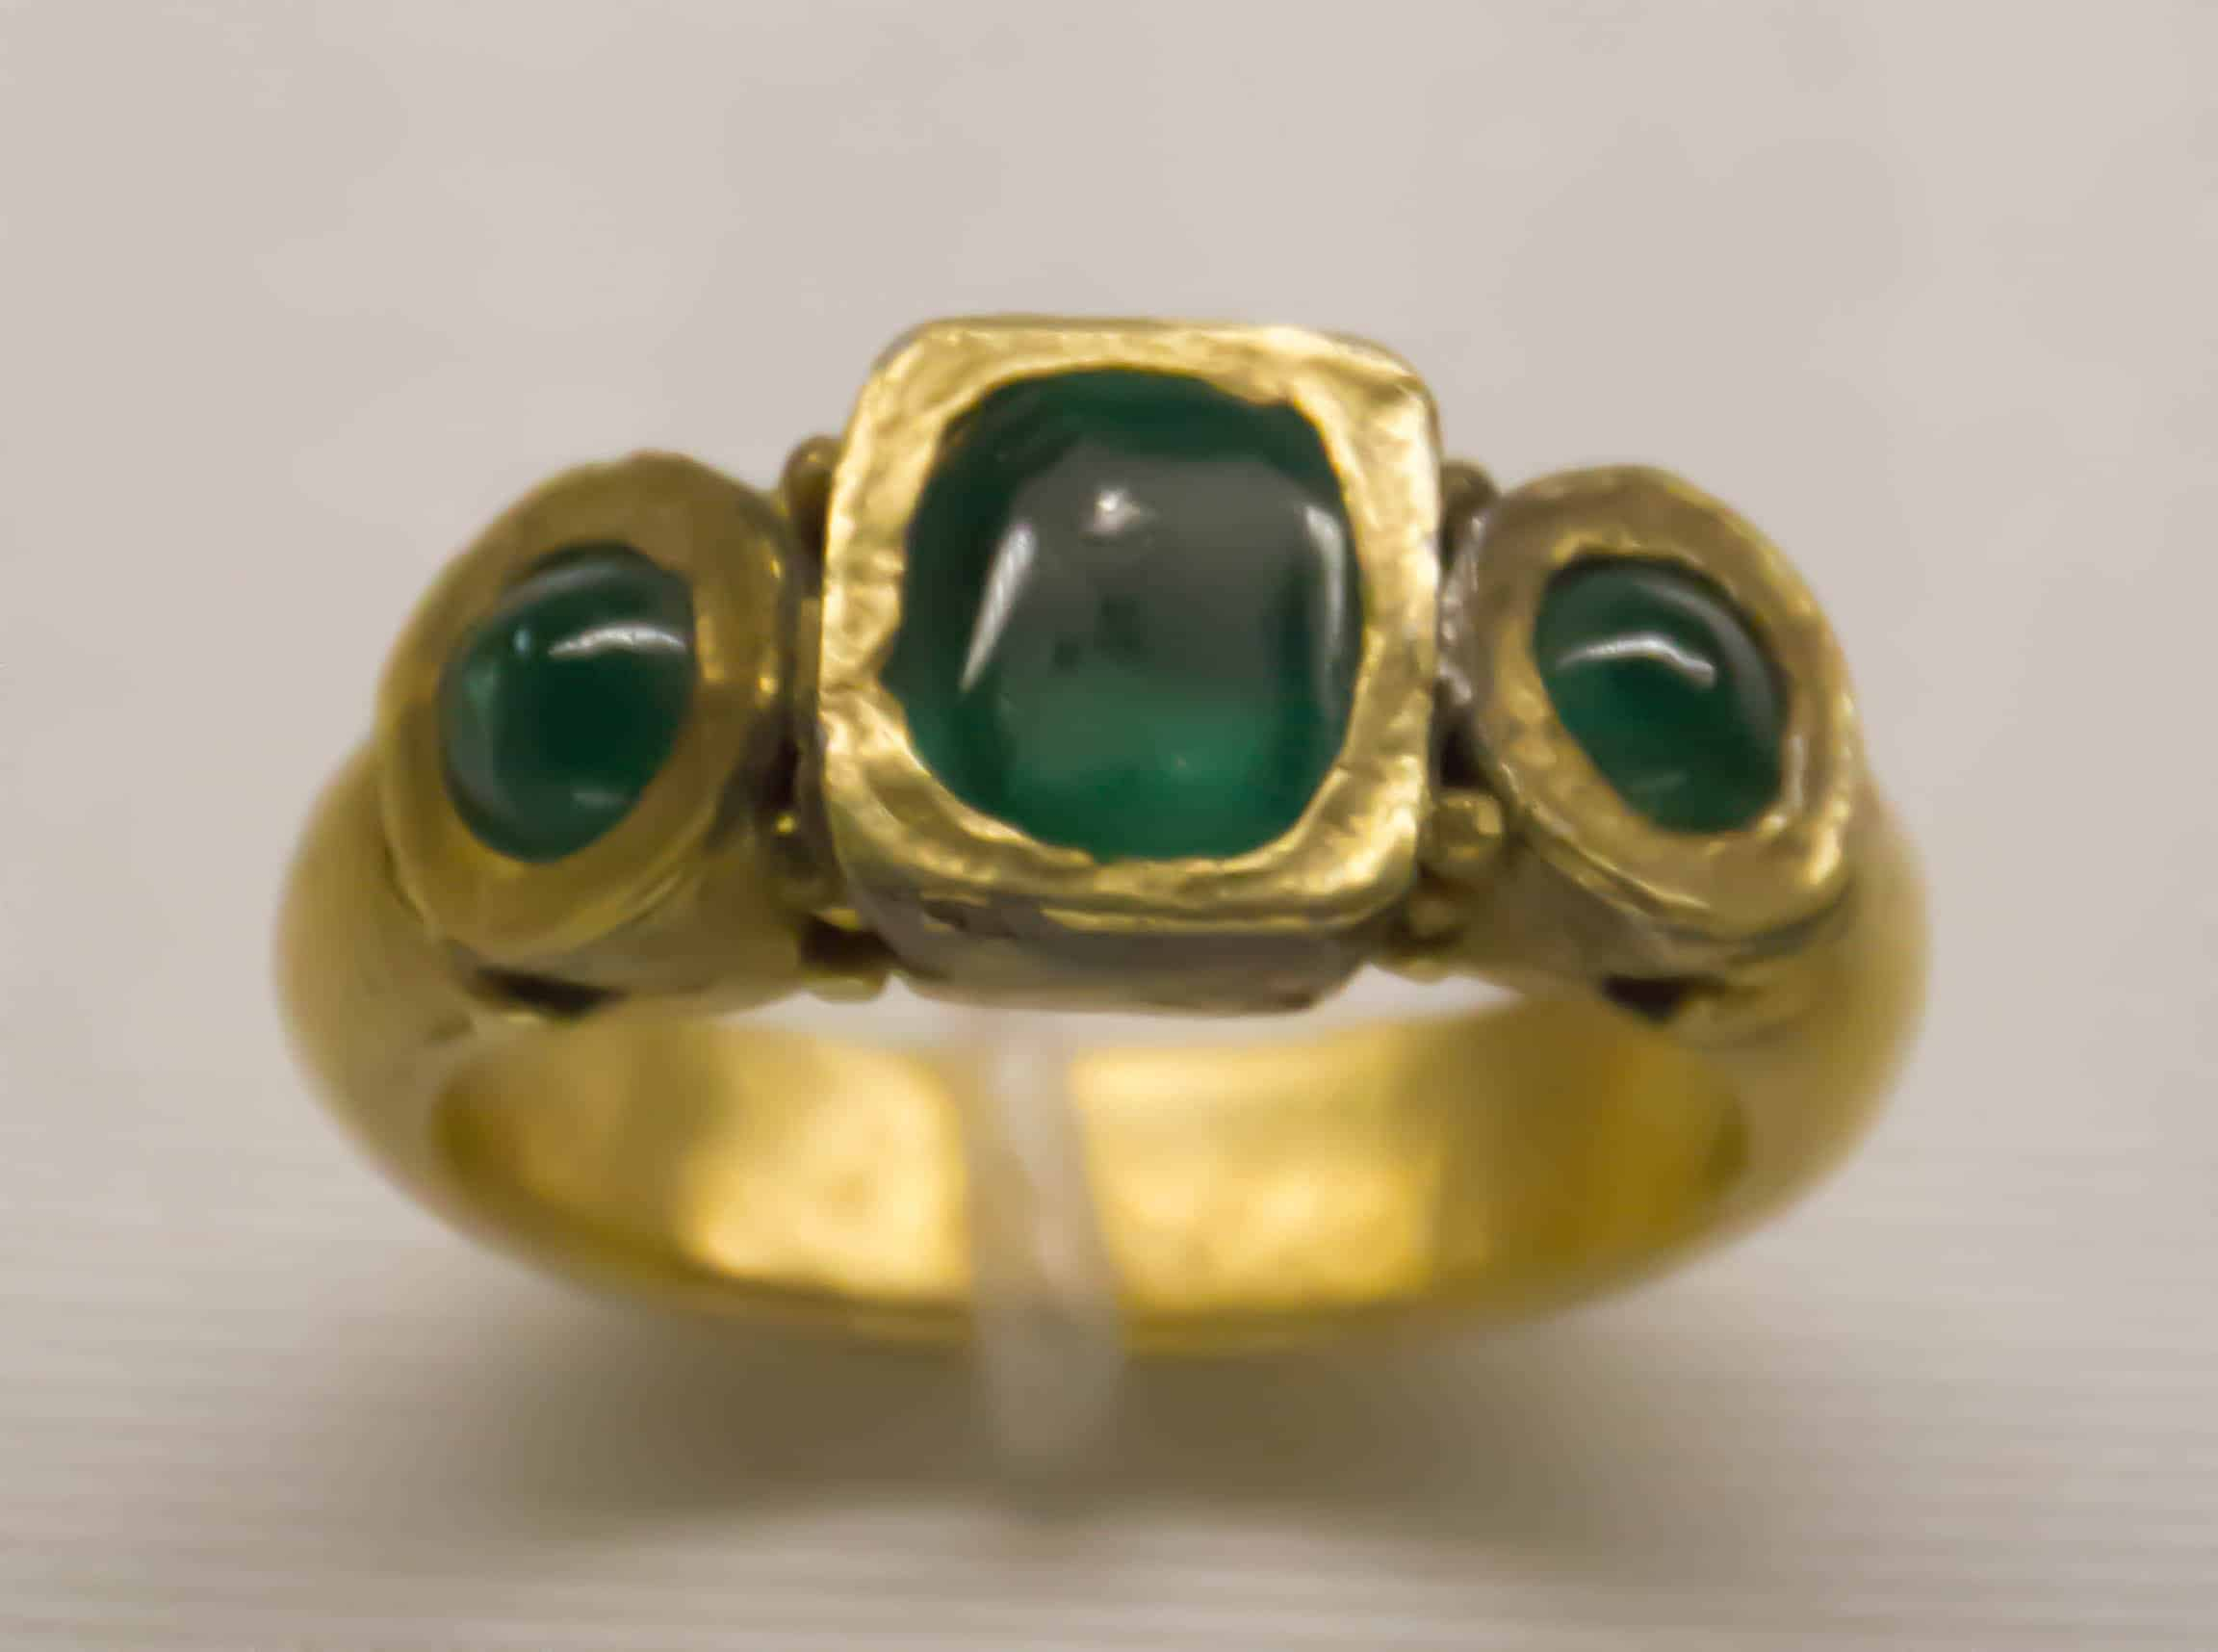 ring to rings aju neoclassical mens ancient university emerald roman